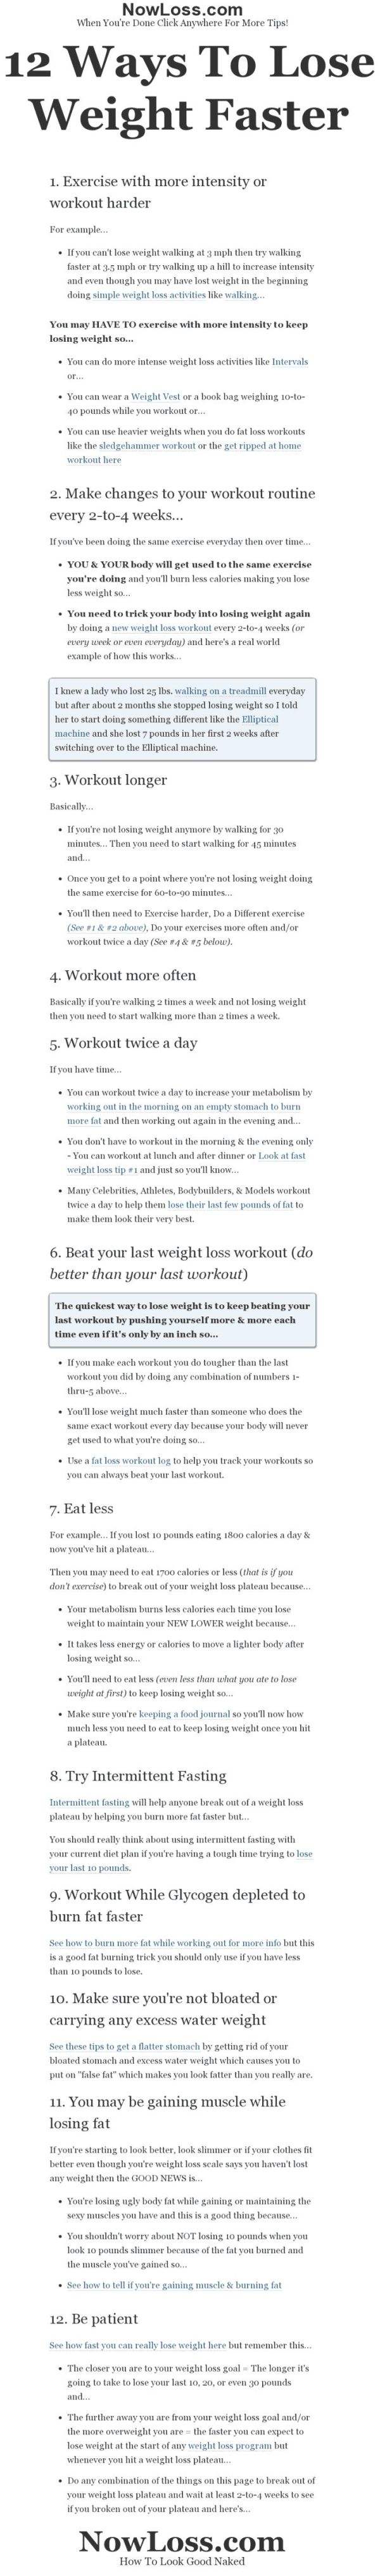 Did coconut oil help you lose weight photo 6